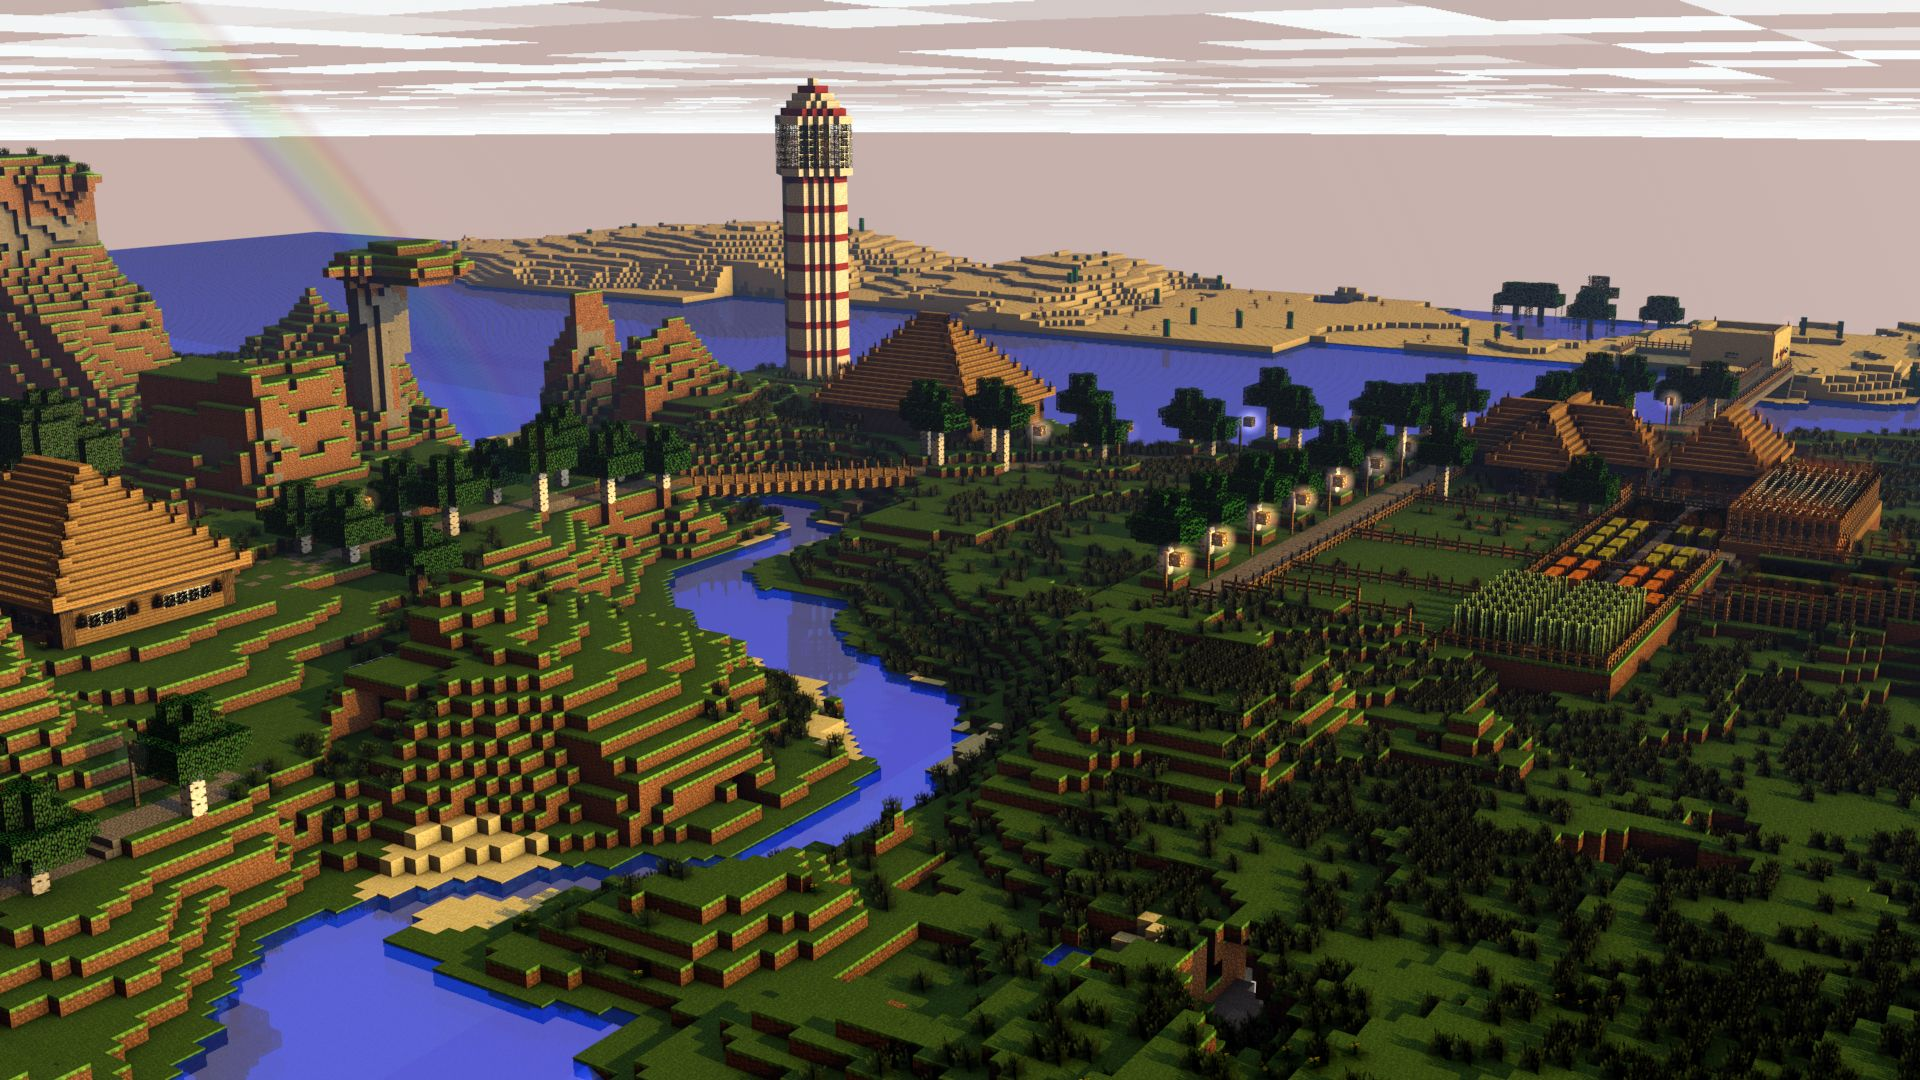 Fantastic Wallpaper Minecraft Scenery - 57be9cbcc54d0db6f15130cddc7a66d1  Picture_293182.jpg